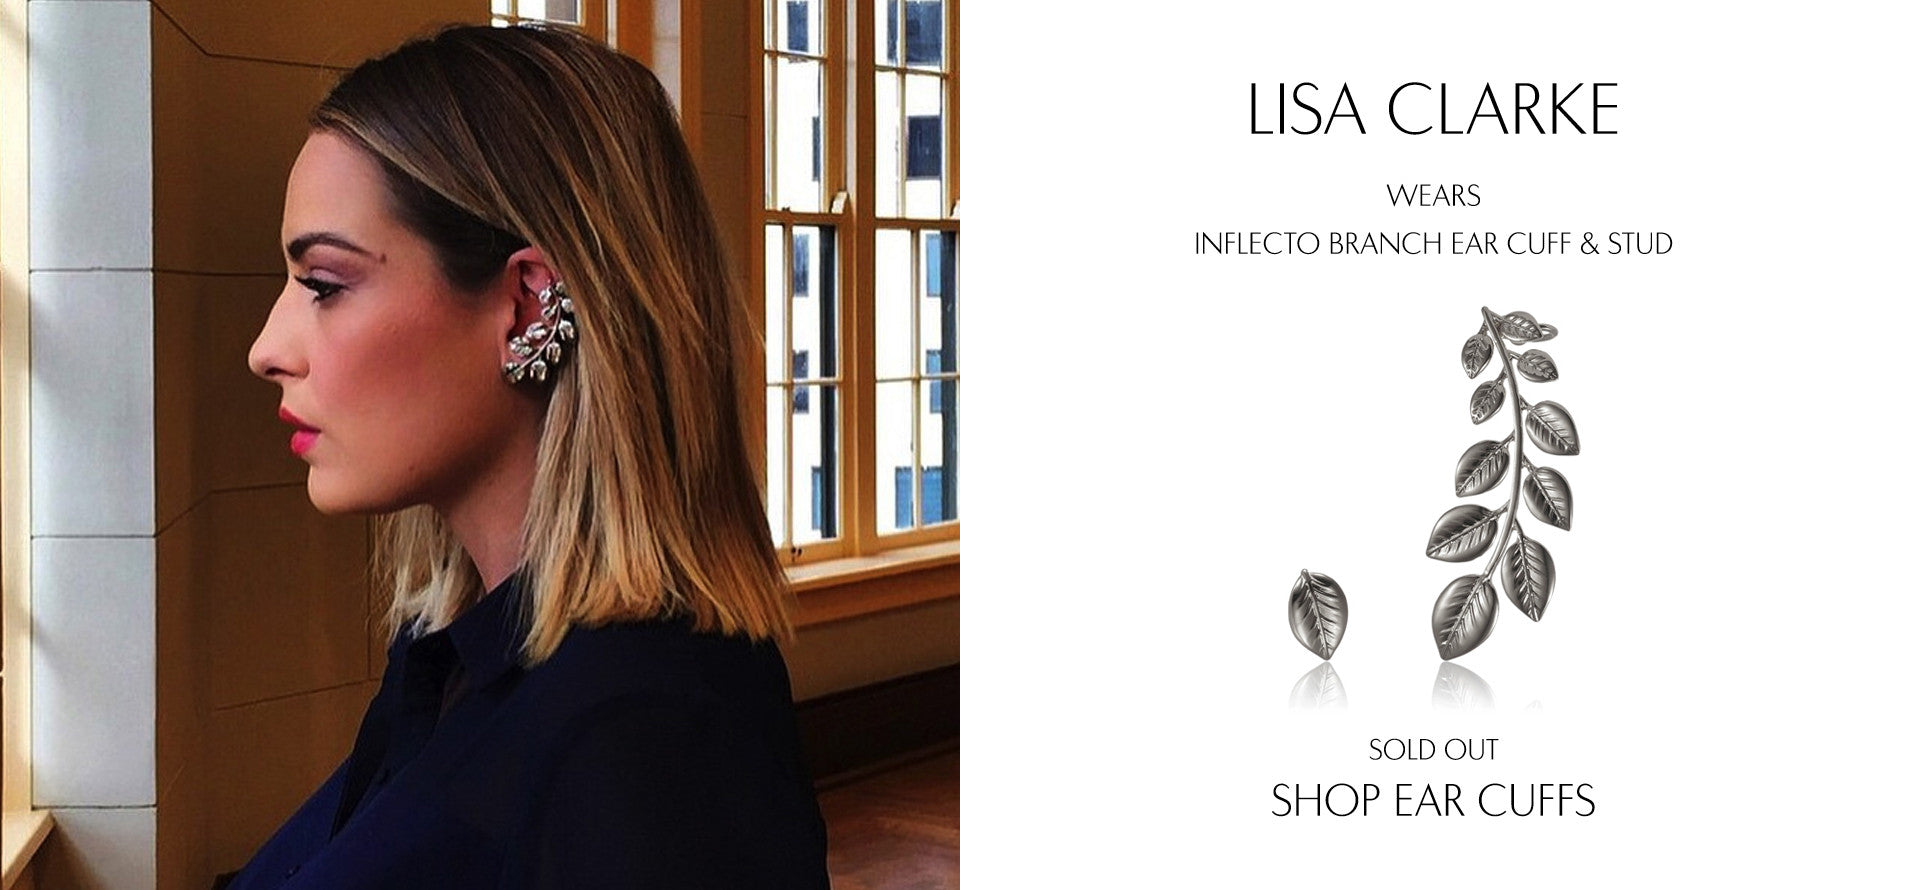 IAmLisaClarke wears Sarina Suriano Inflecto Branch leaf earcuff and stud